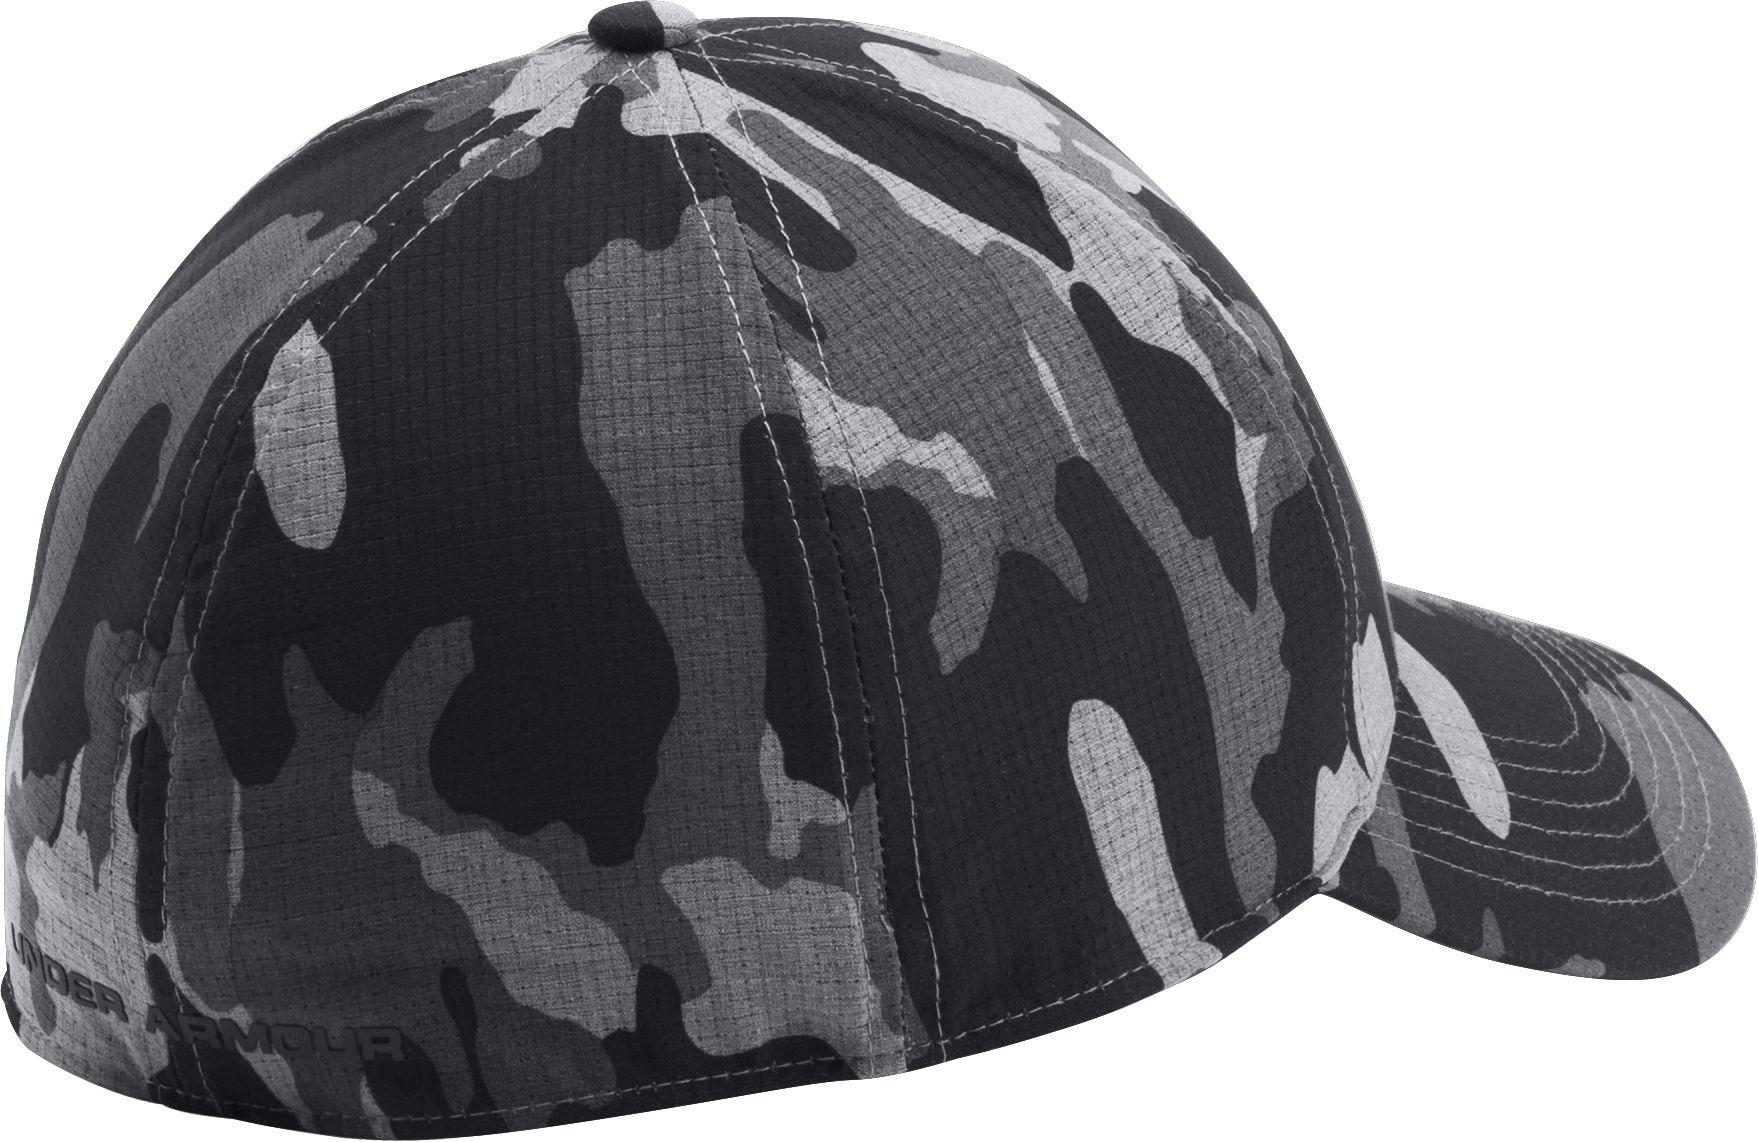 63fcf616d4e6 real under armour military golf hat ad4d7 a3850